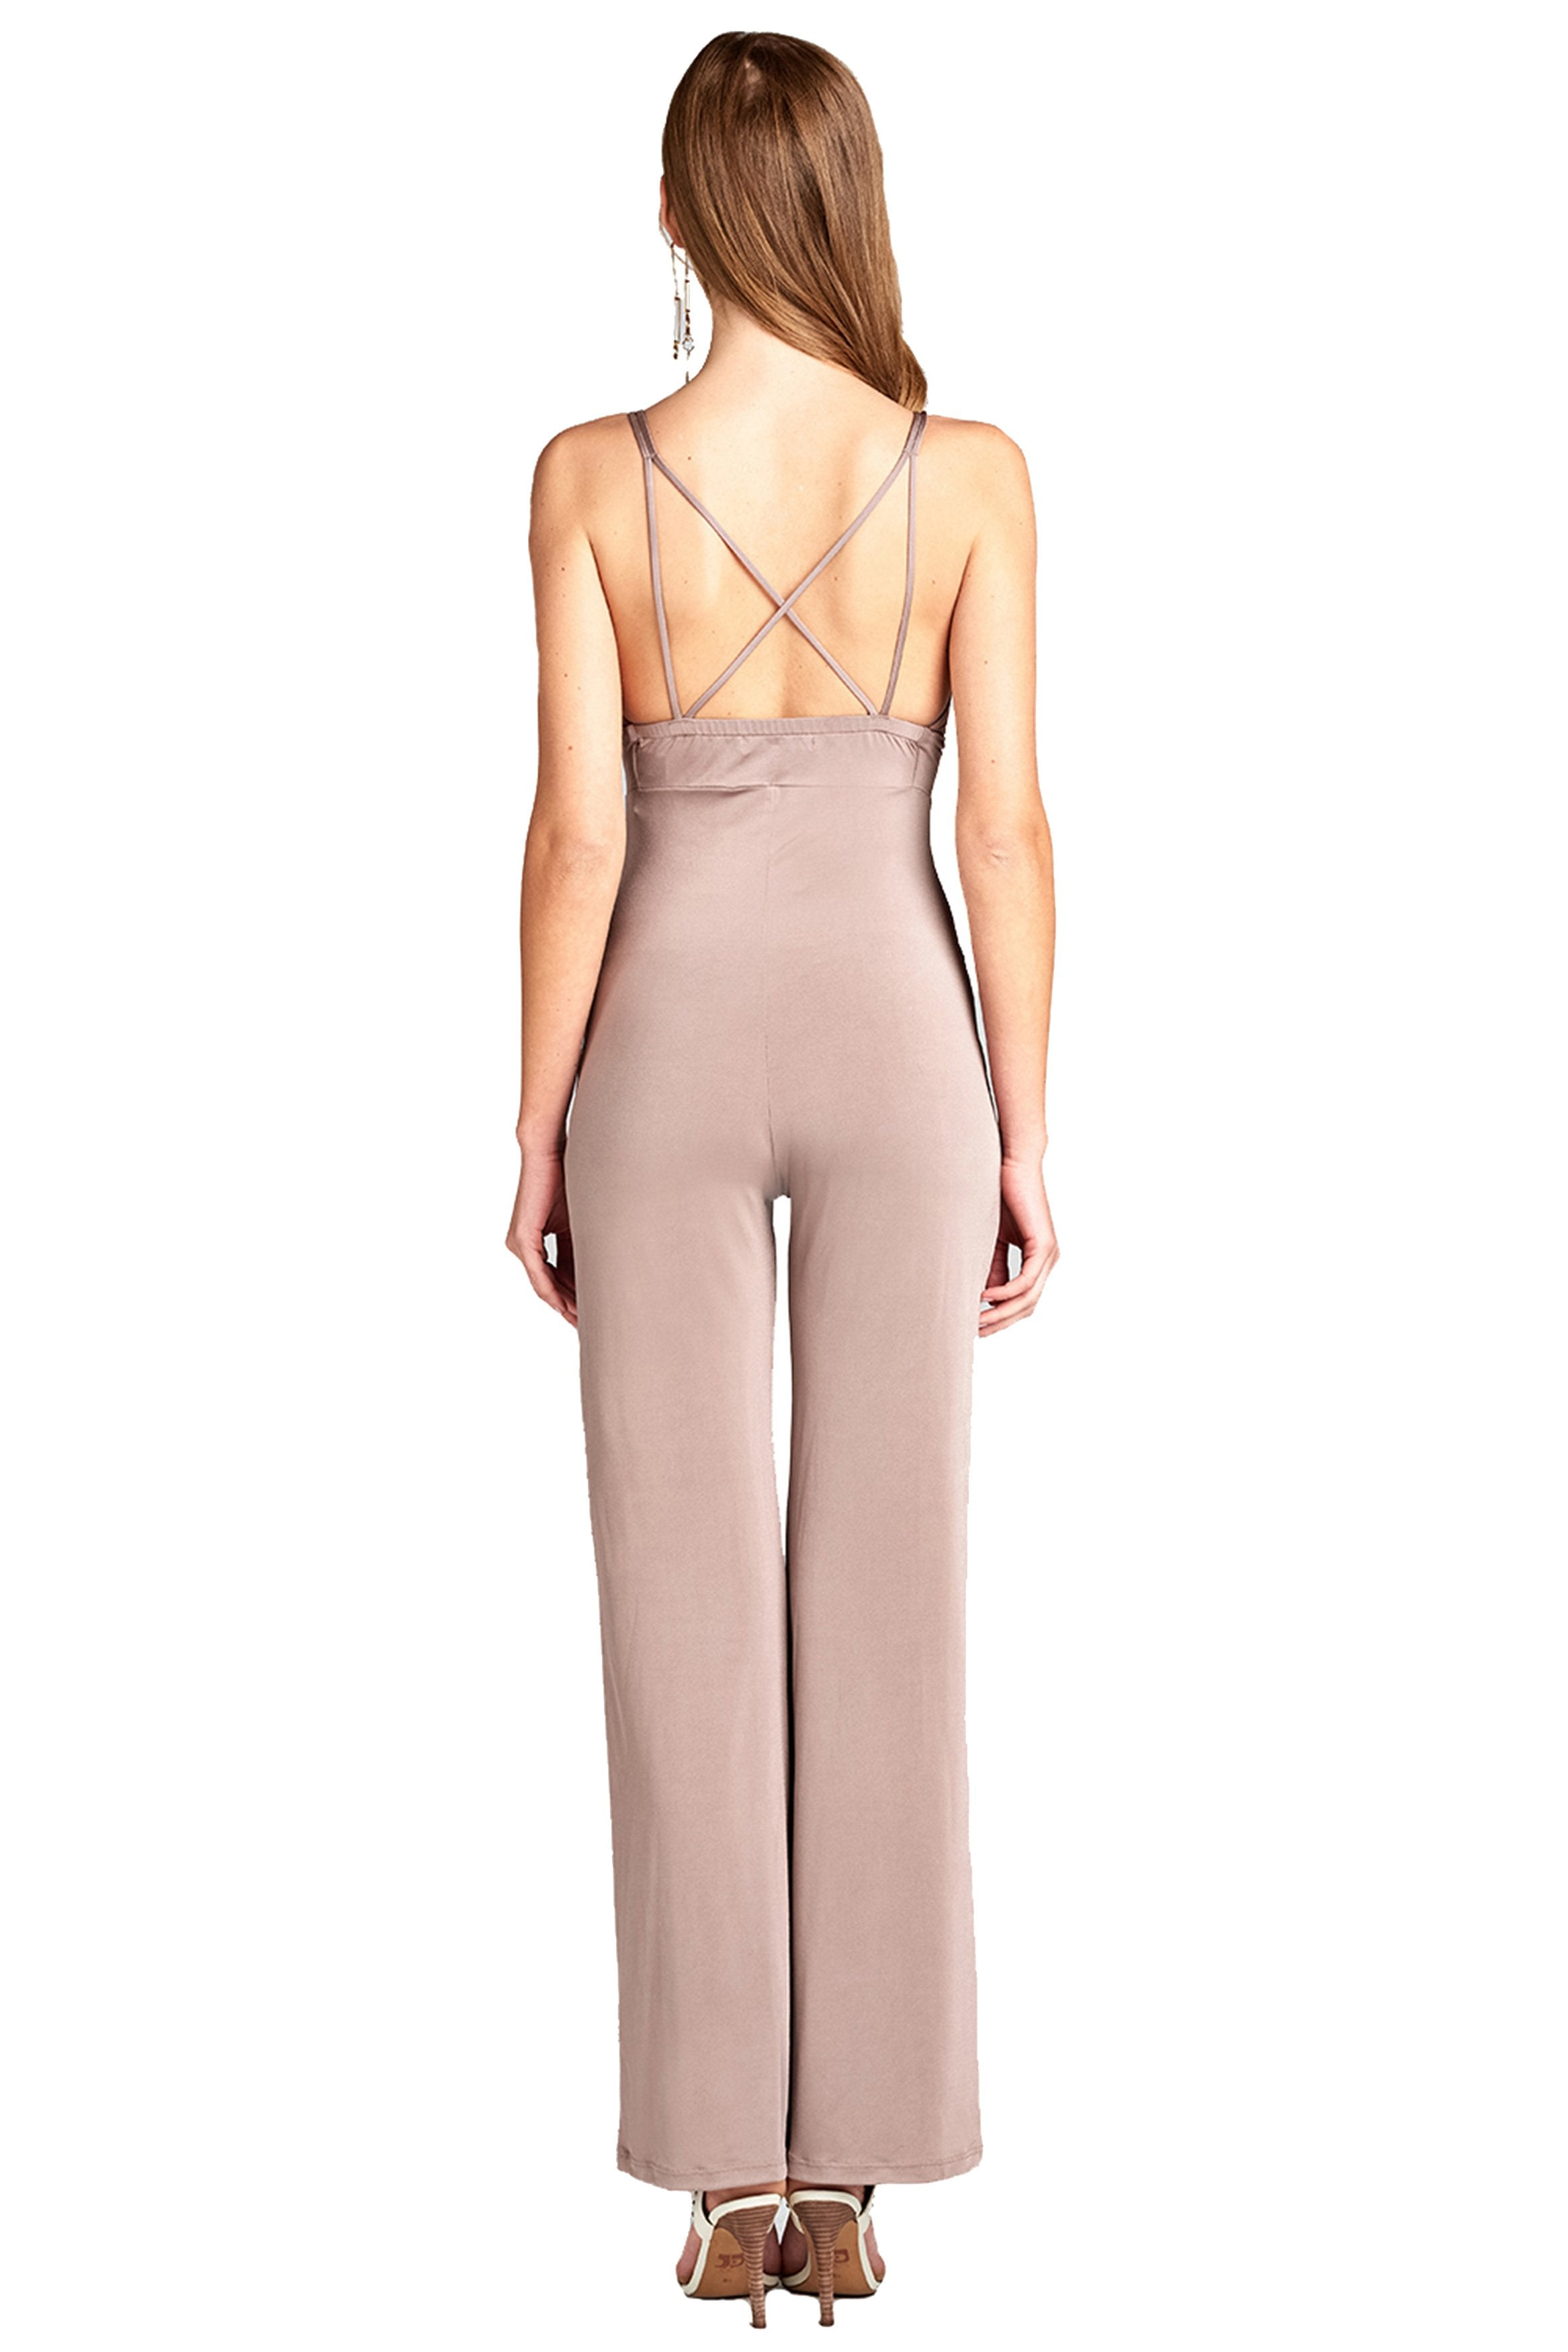 V Neck With Back Cross Strap Long Wide Palazzo Leg Stretchy Jumpsuit